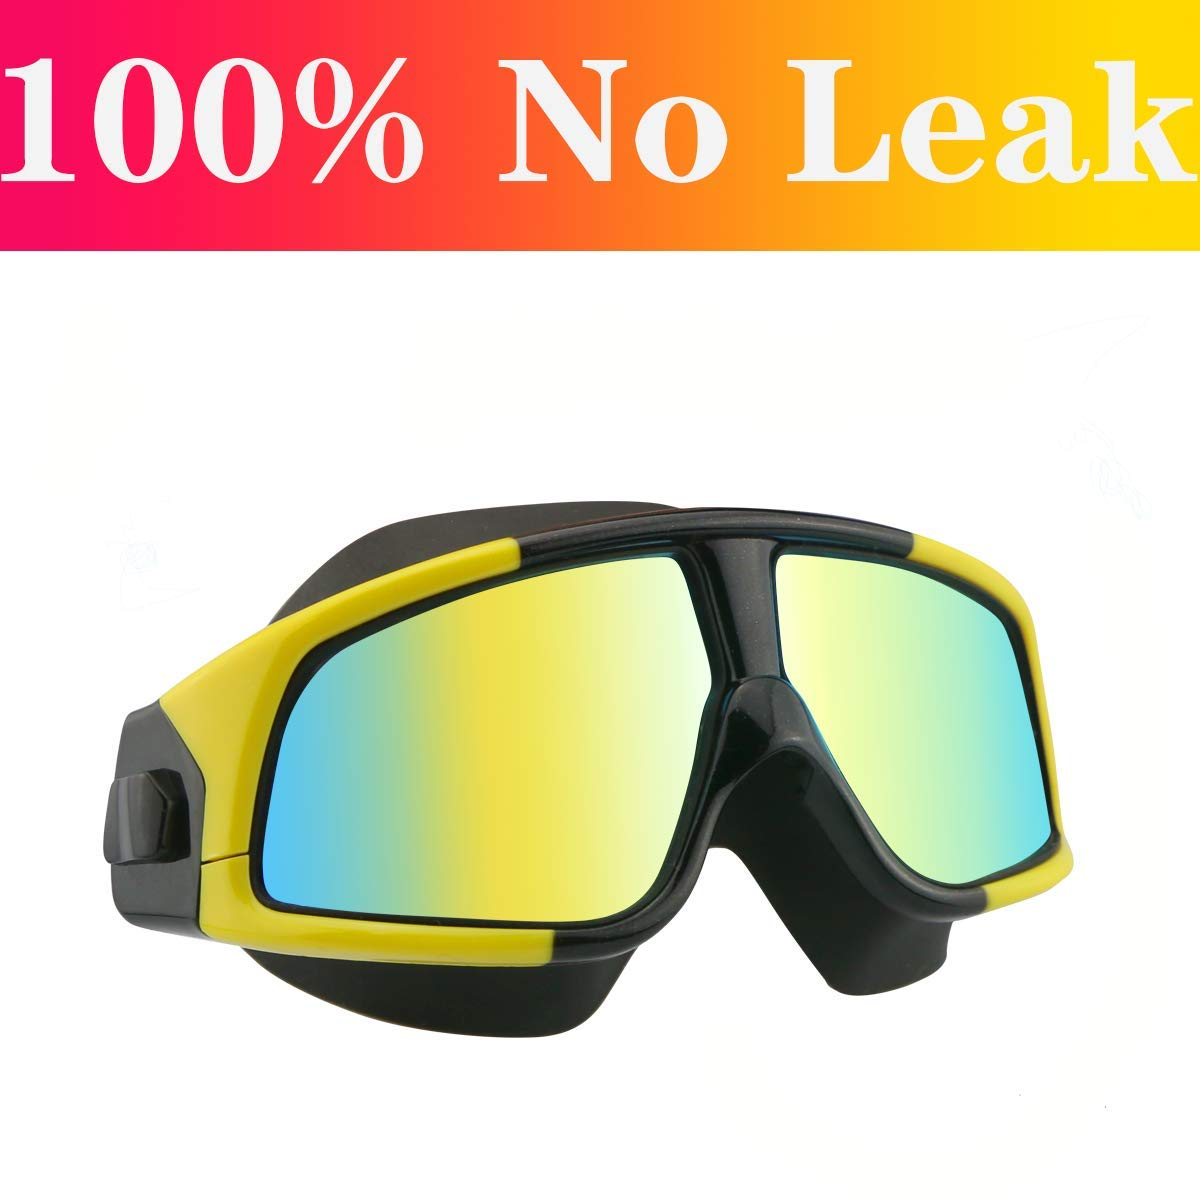 Aquior Swim Goggles, Big Frame Swimming Glass Leakproof Anti Fog UV Protection, 180 Wide-Vision Swim Mask Goggles for Adult Youth Men Women